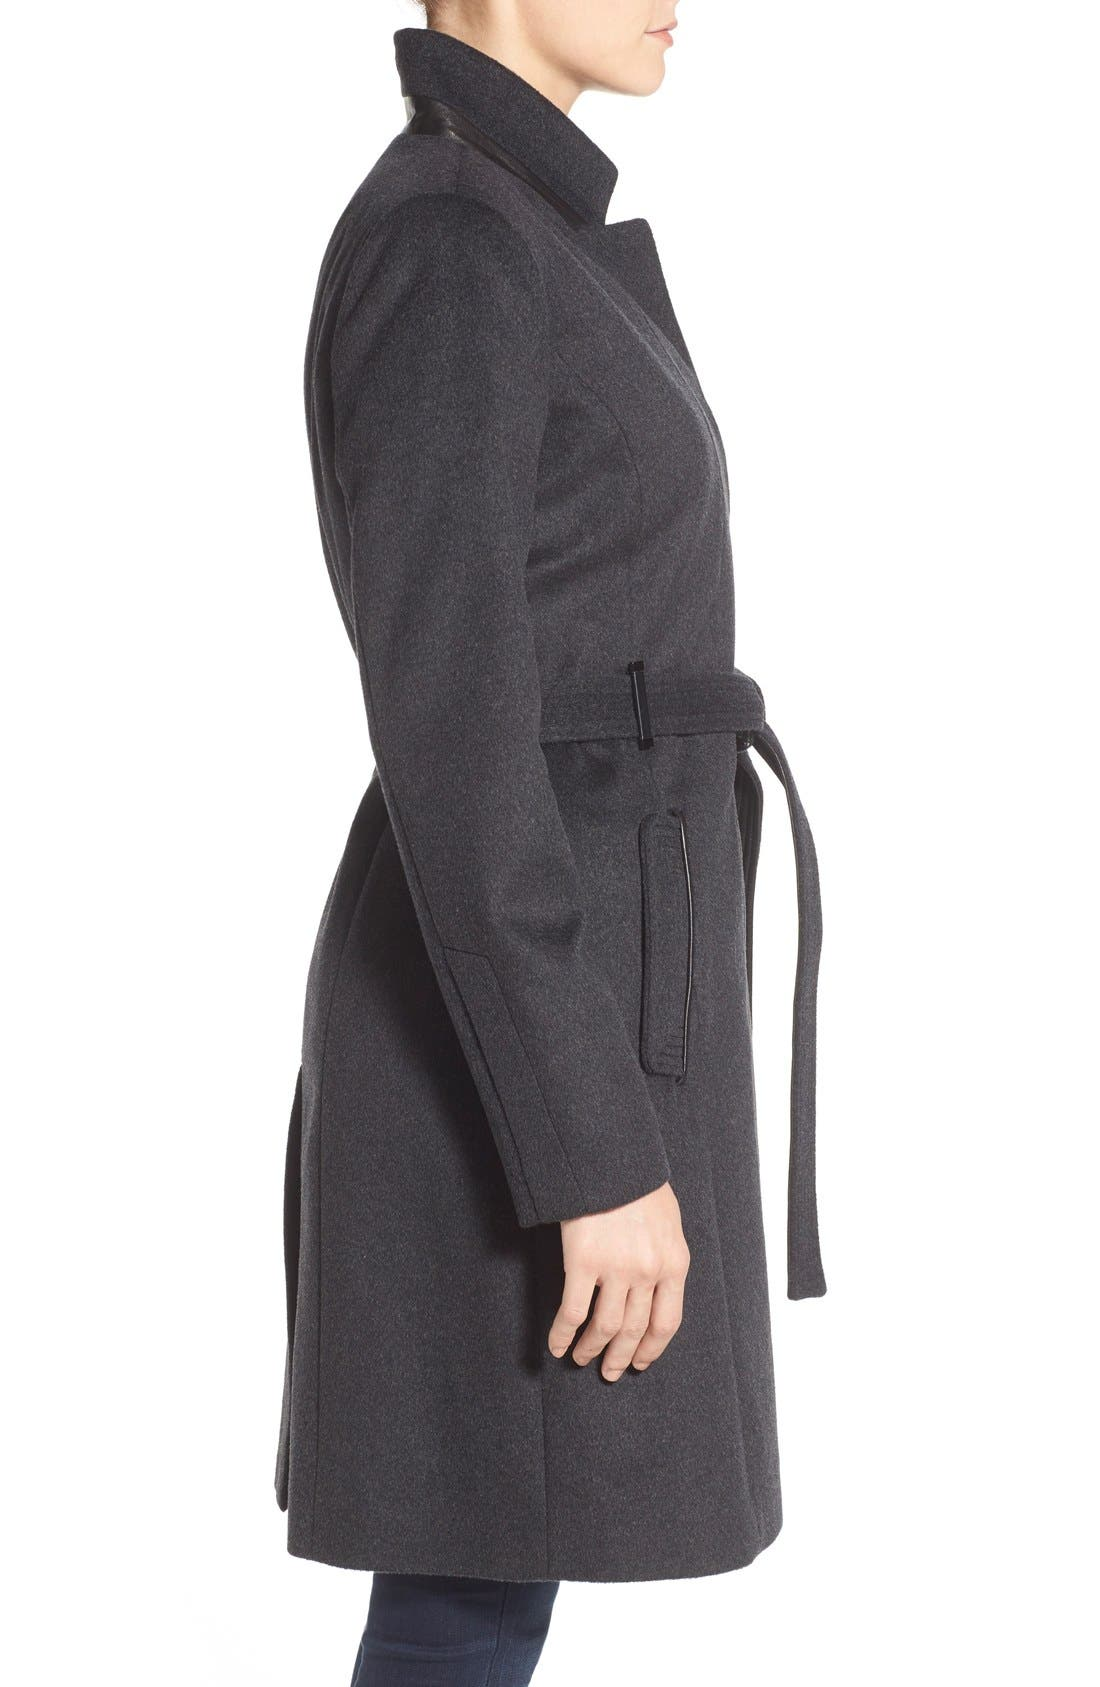 Badgley Mischka 'Ivana' Long Belted Inverted Collar Coat,                             Alternate thumbnail 3, color,                             020